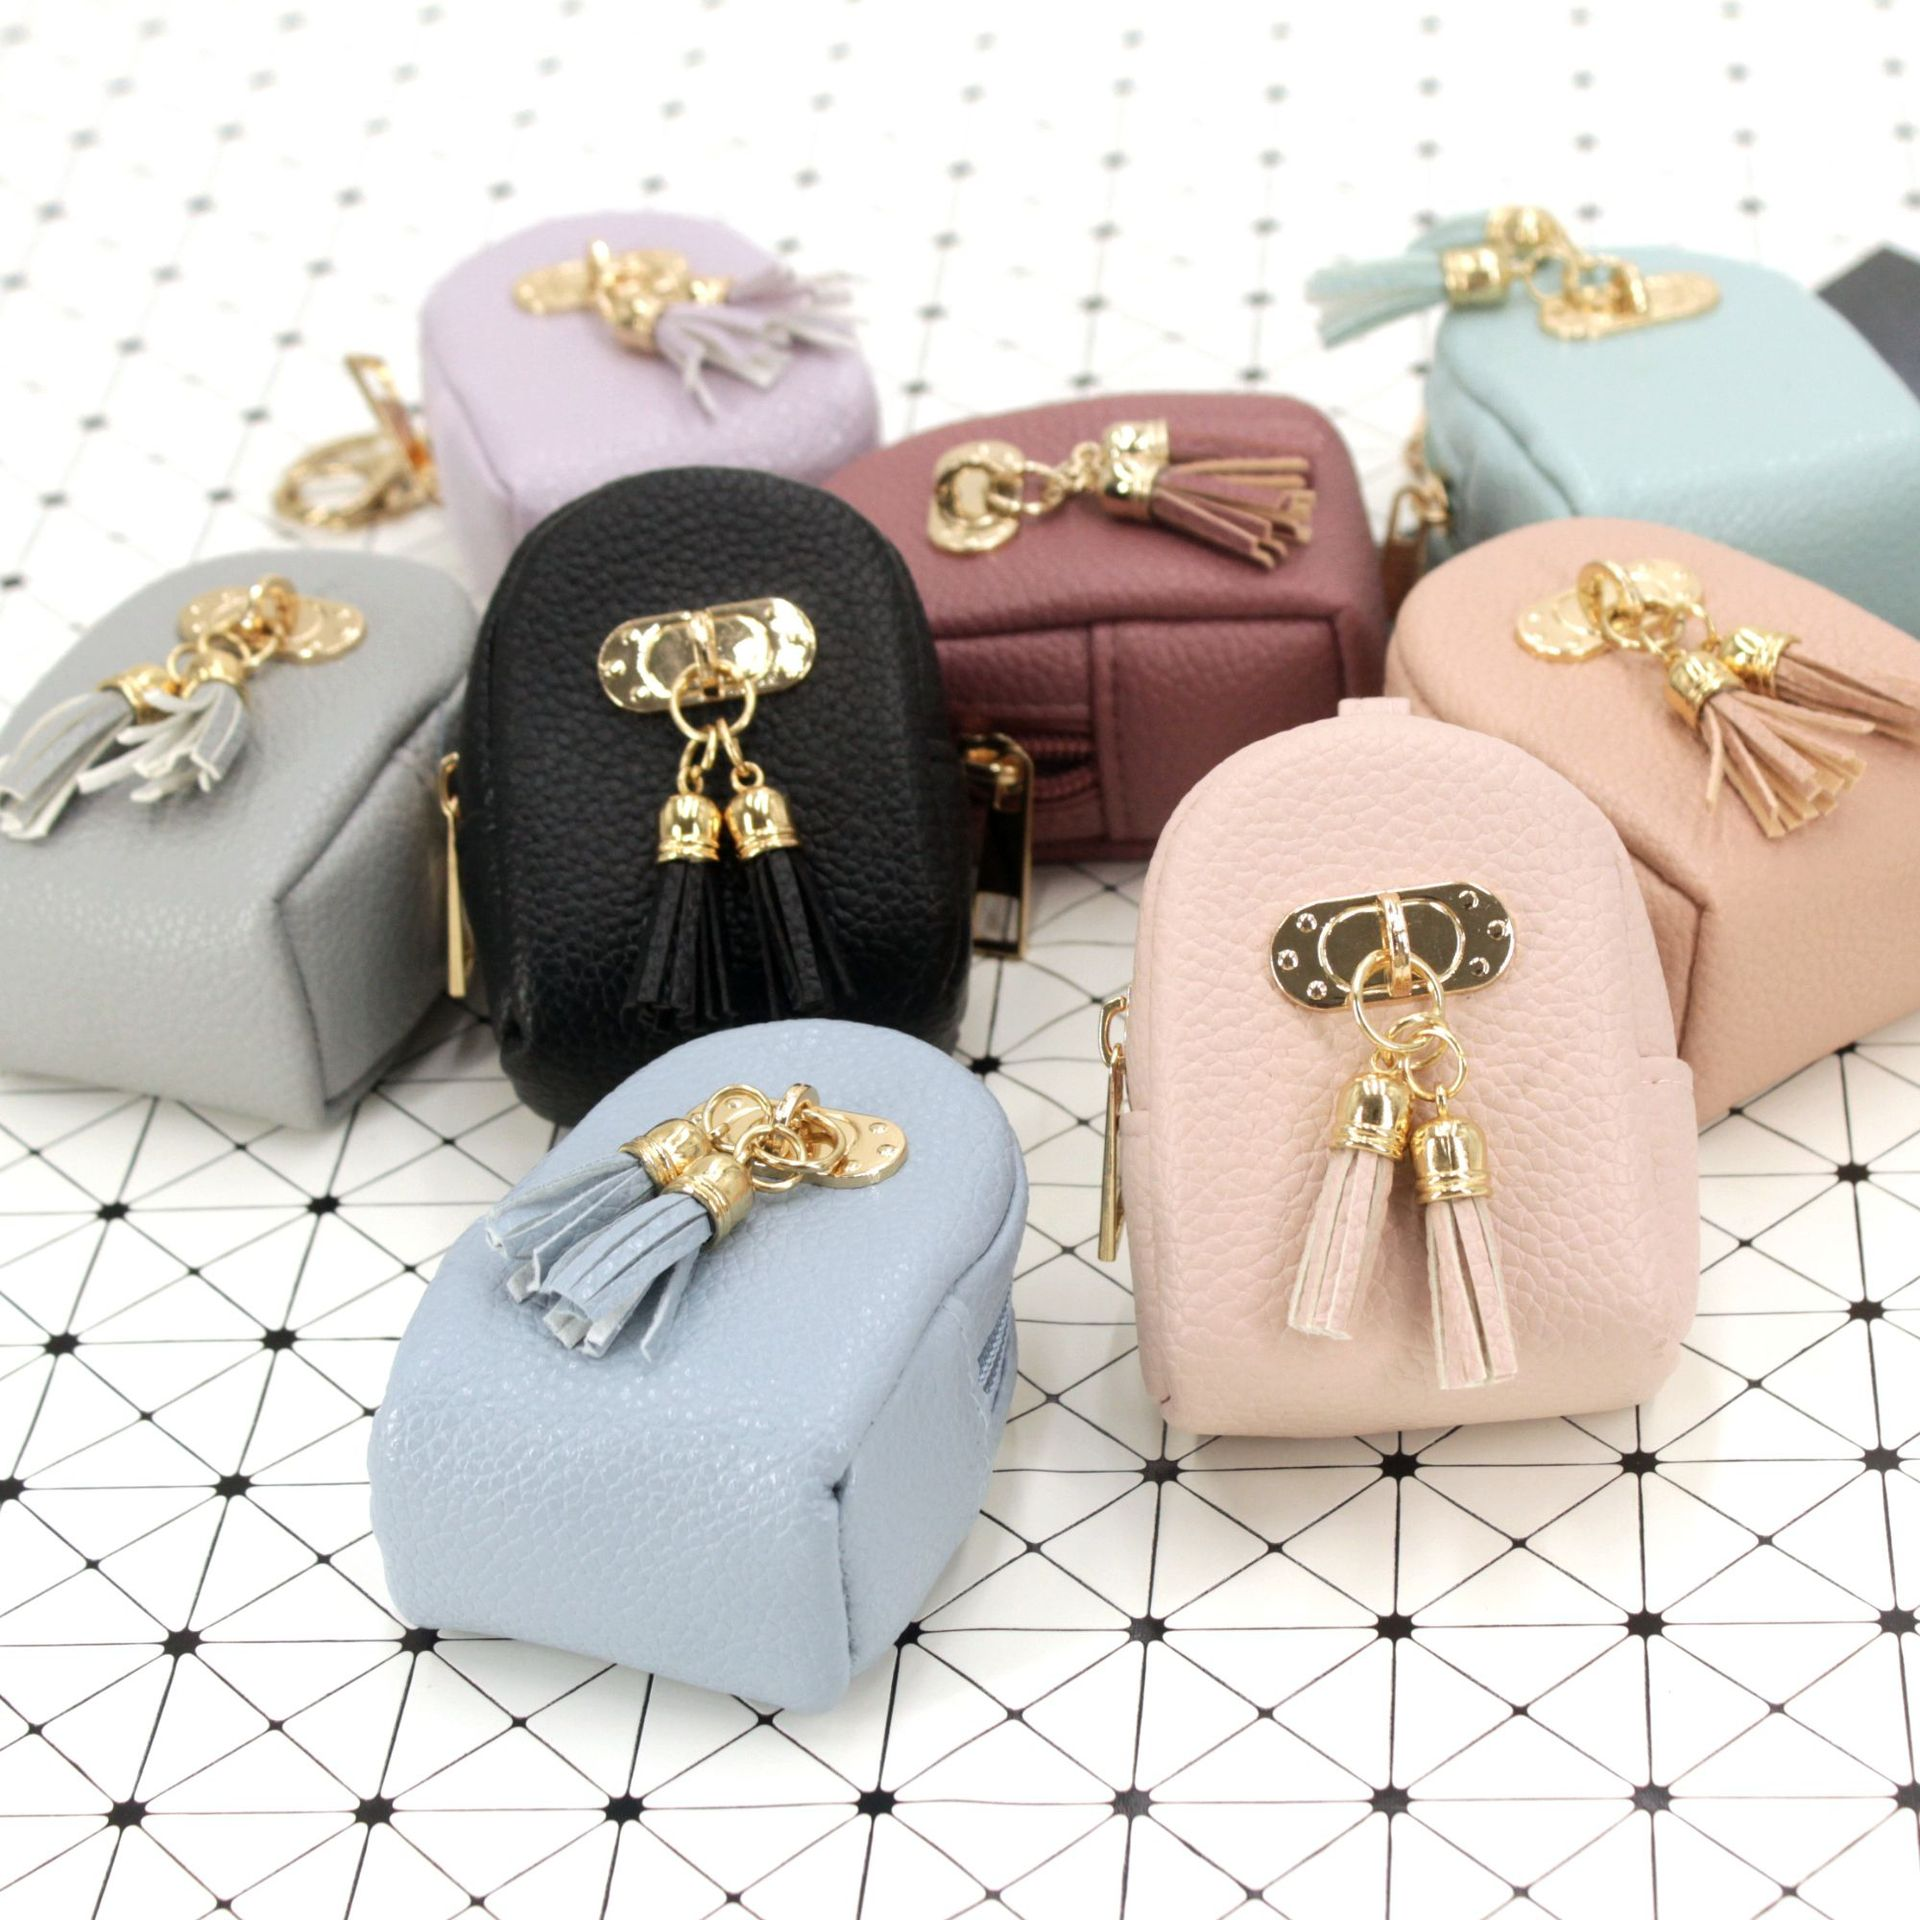 Tassel coin purses women mini wallets small money bags Lady designer brand key bags Female high quality clutch change purse #20